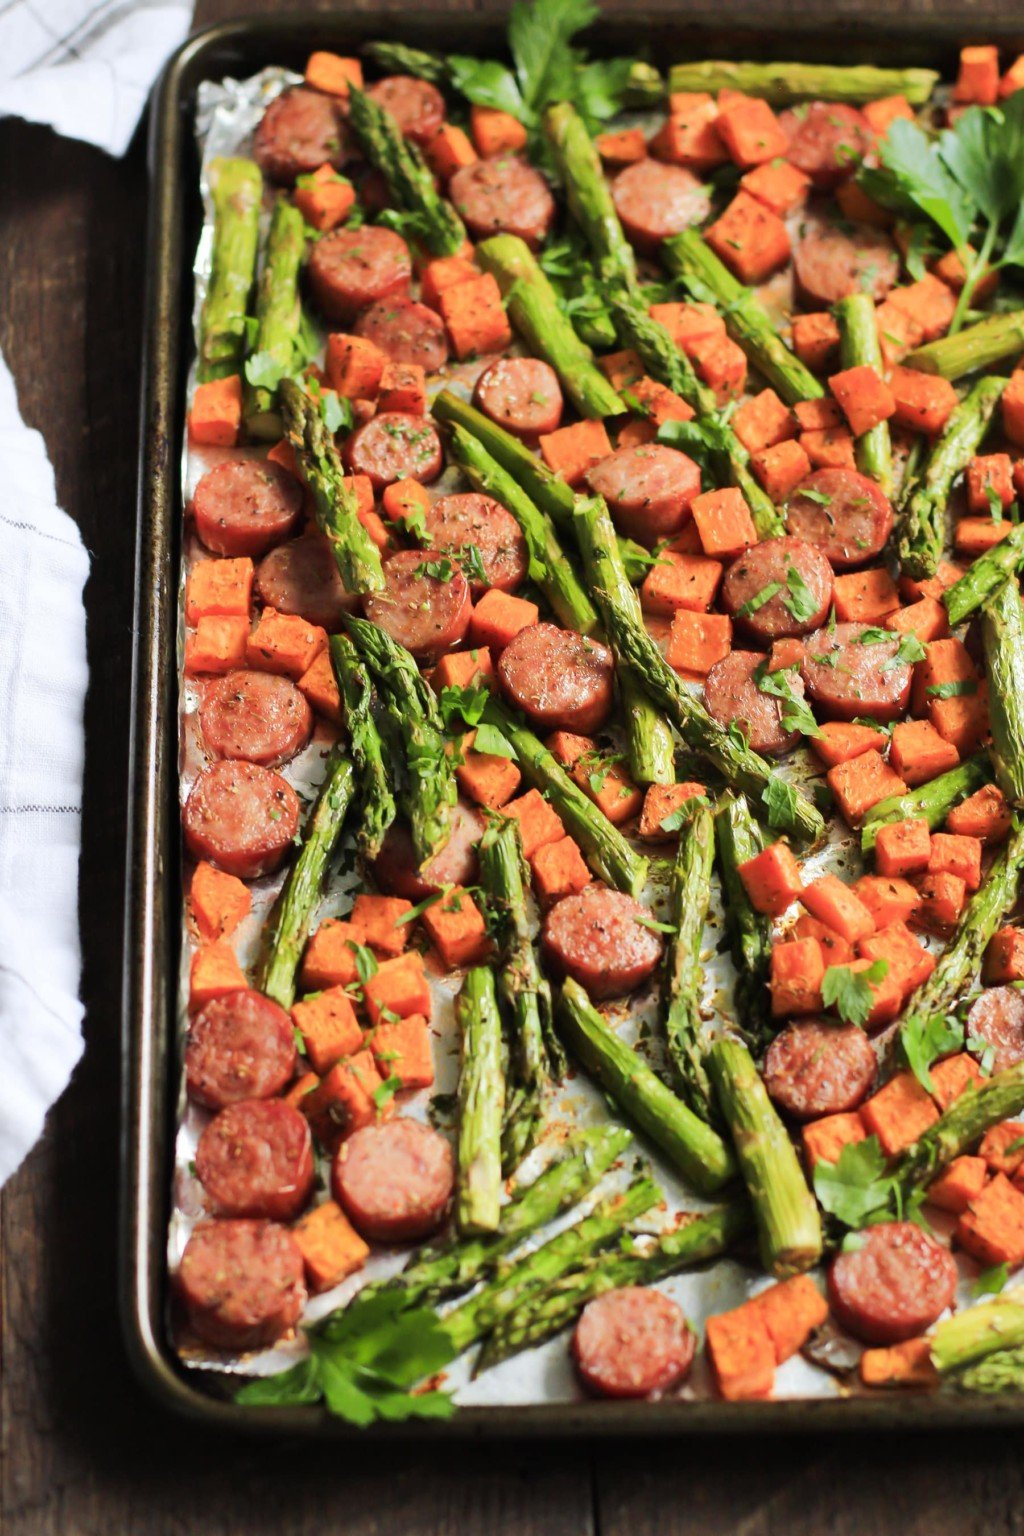 Onepan Sausage With Sweet Potato And Asparagus  This Onepan Sausage With